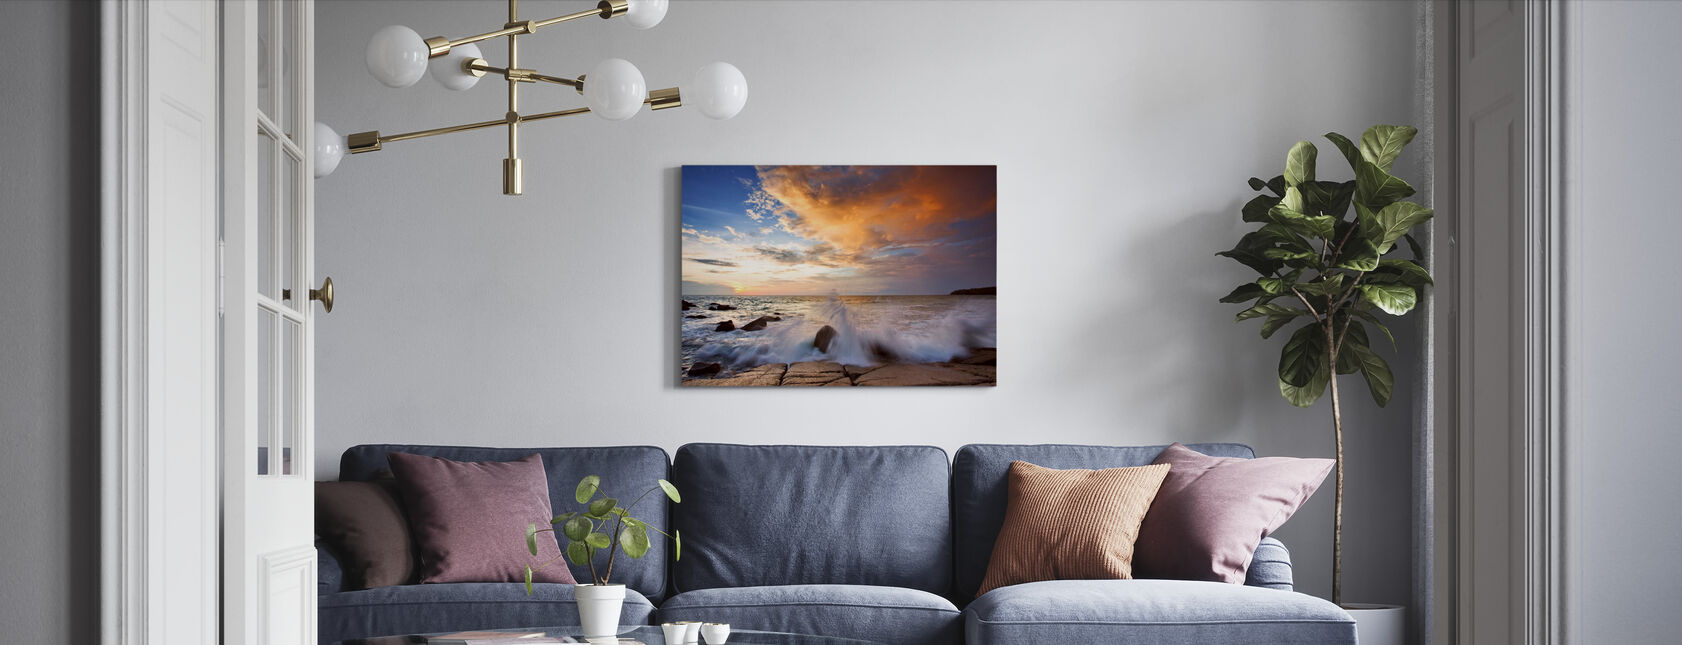 Wave in Sunset - Canvas print - Living Room